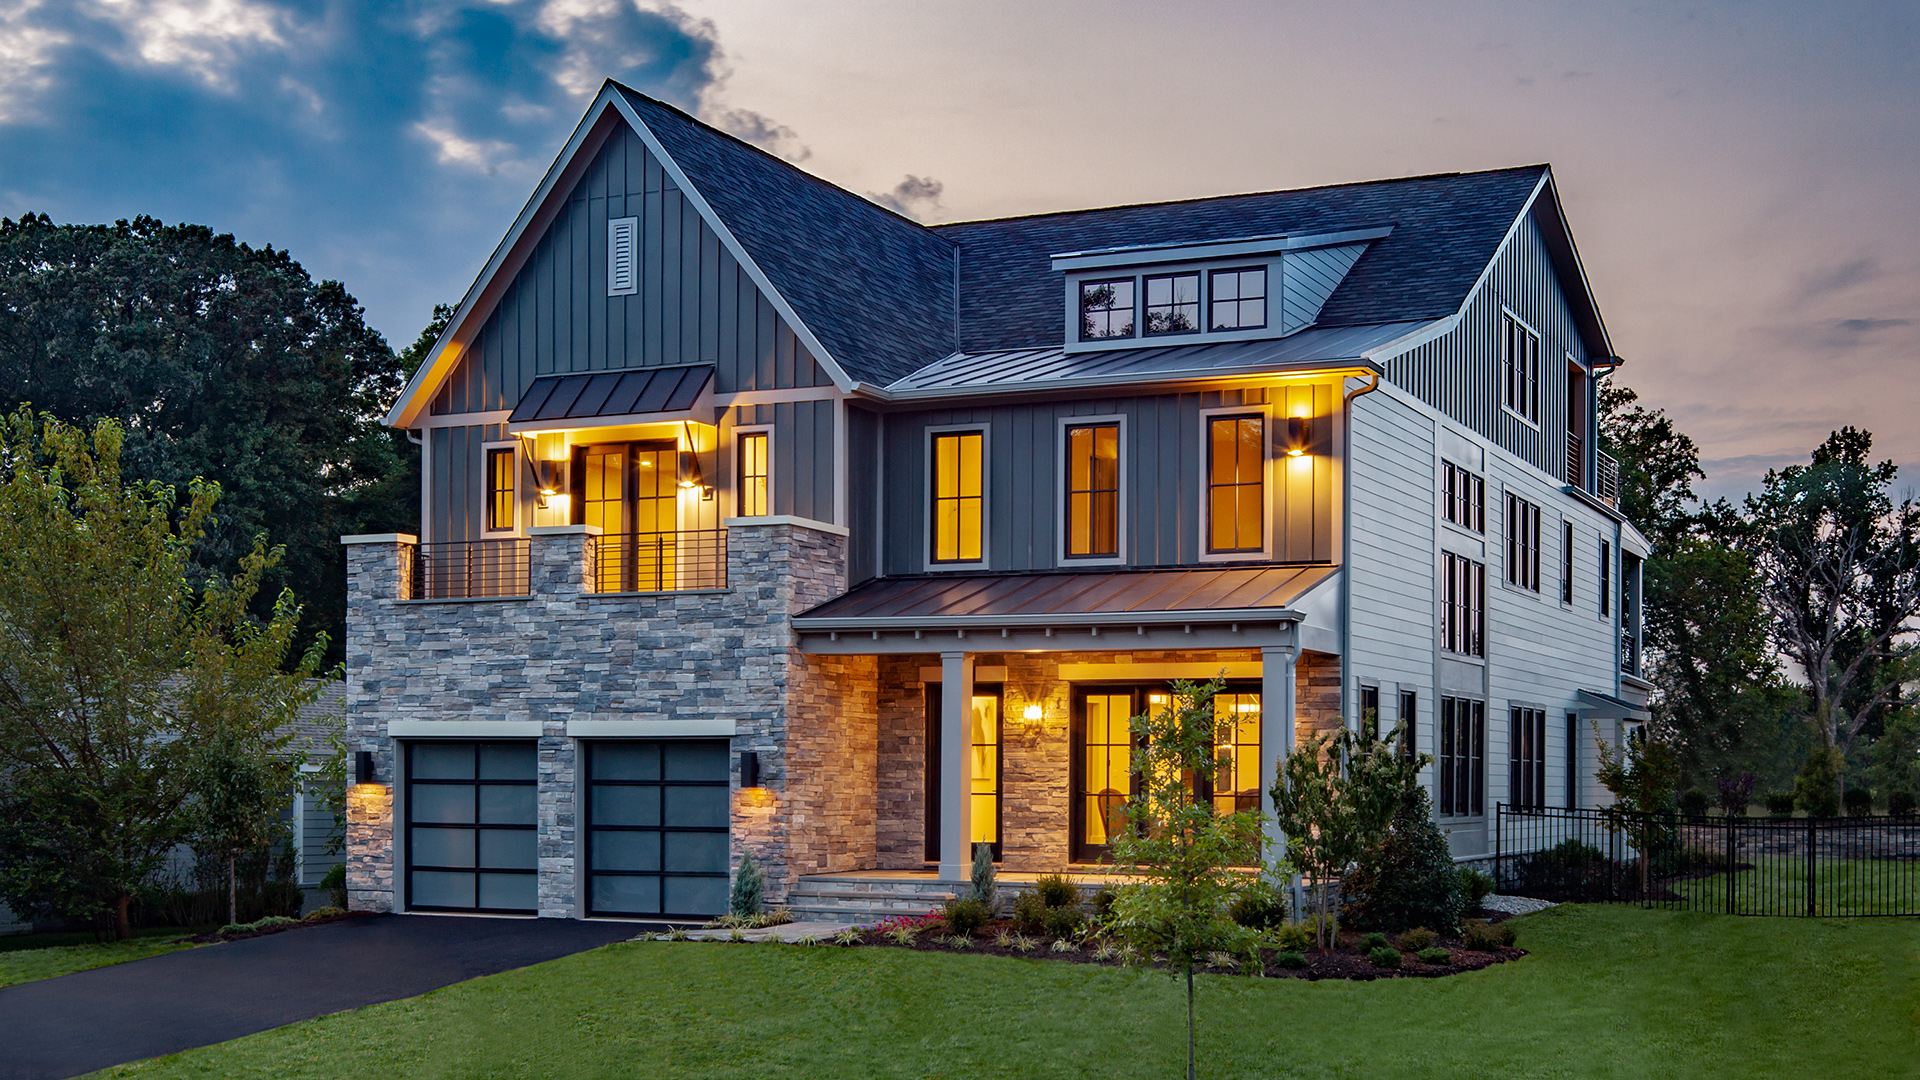 New Luxury Homes For Sale In McLean, VA